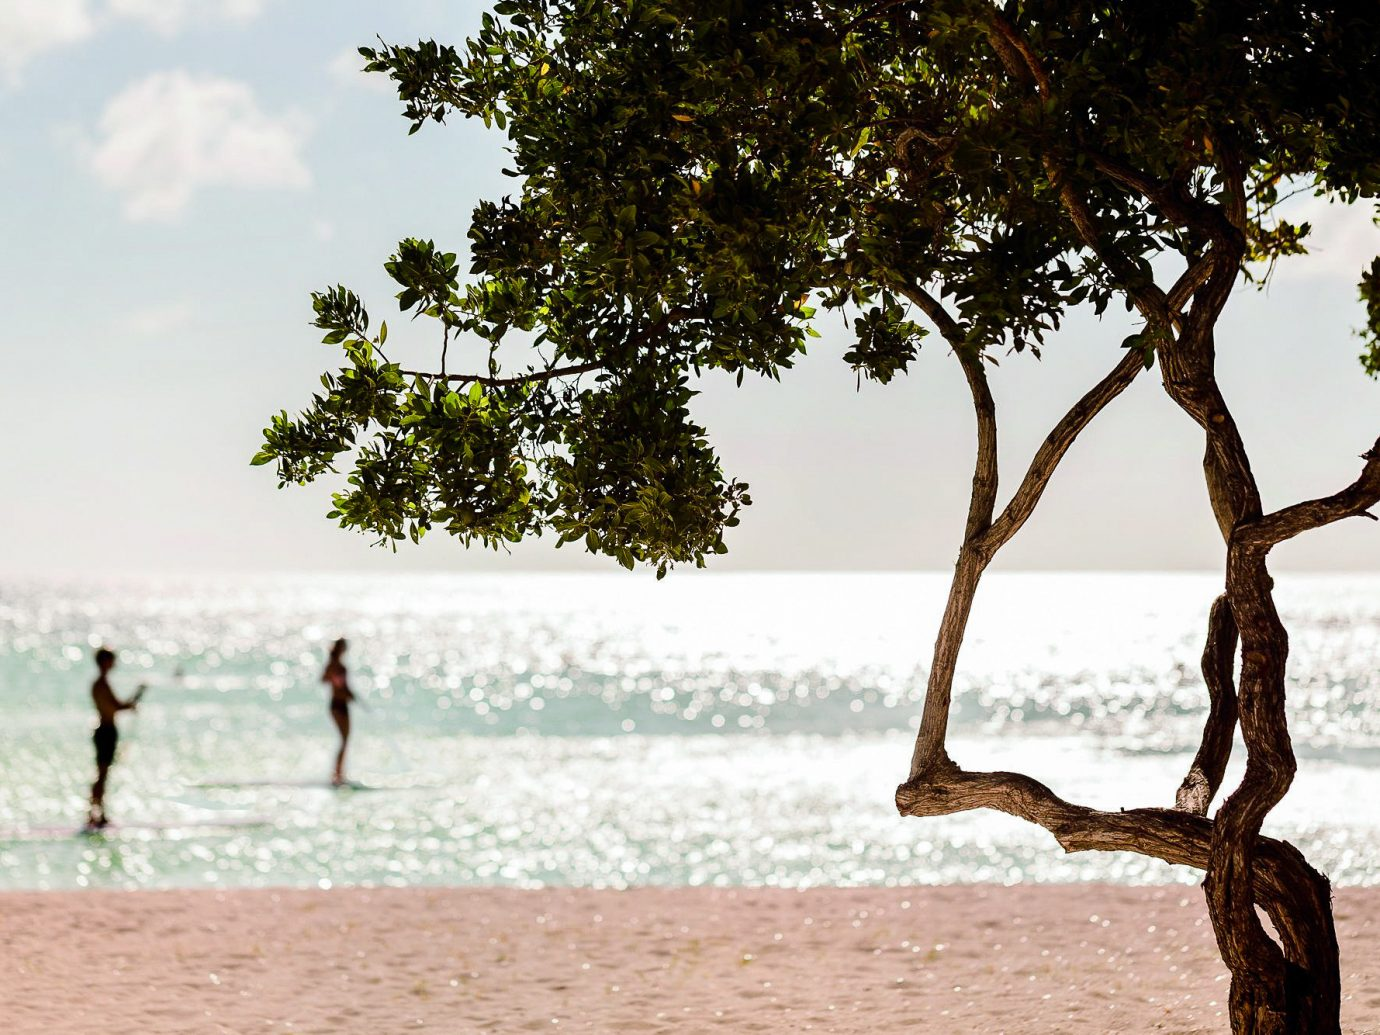 Hotels Romance outdoor tree sky water Beach vacation plant morning leisure summer recreation shore fun tourism sand Sea sandy day